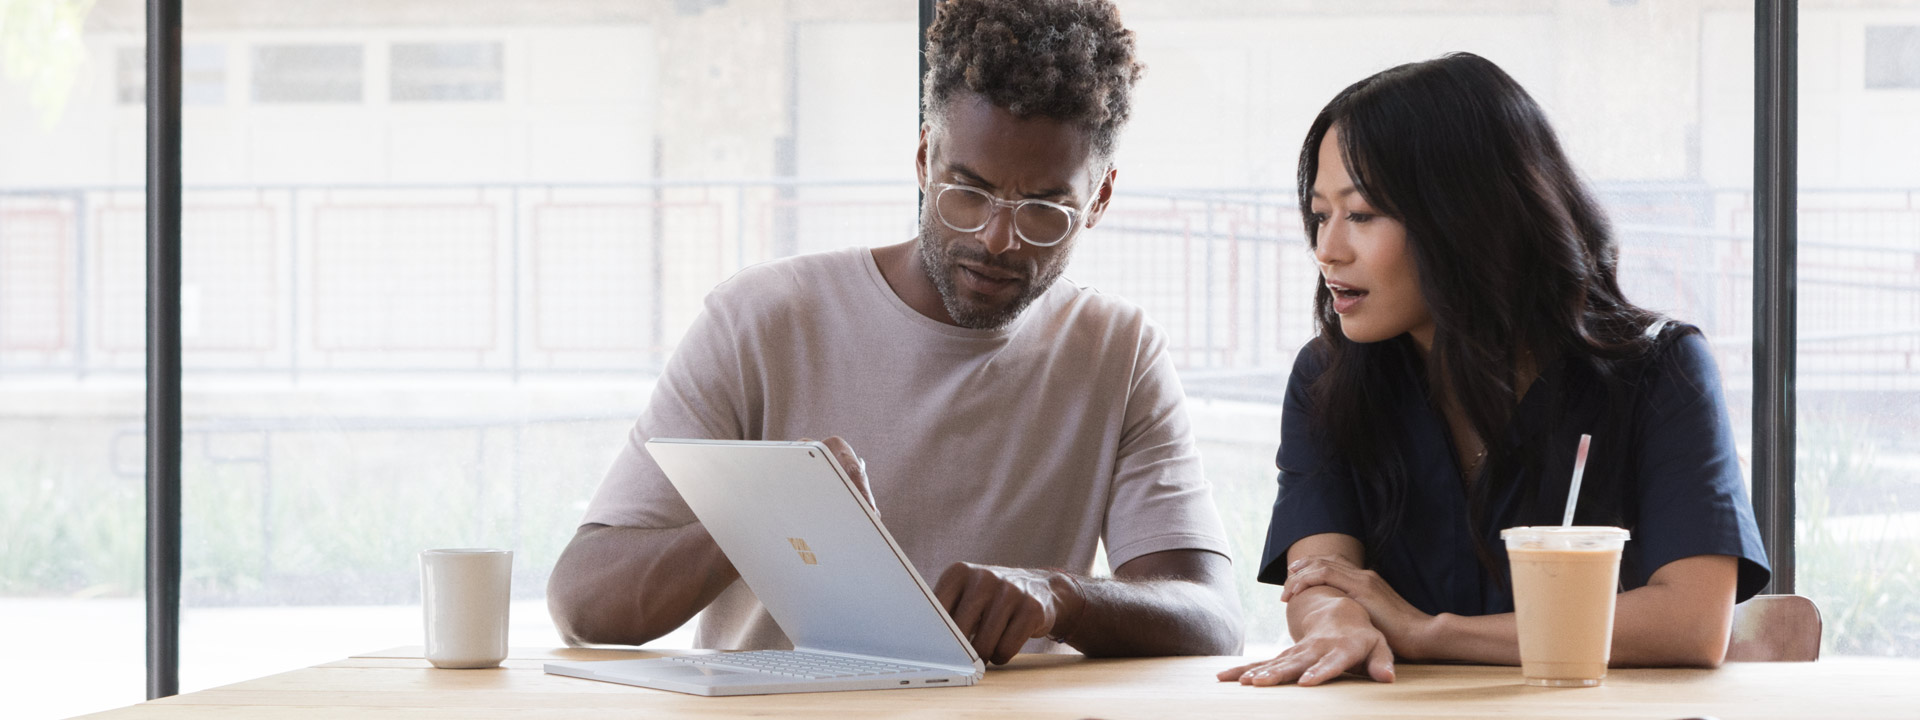 Man and woman using  a Surface Book 2 as a tablet with a keyboard folded under as a support stand.